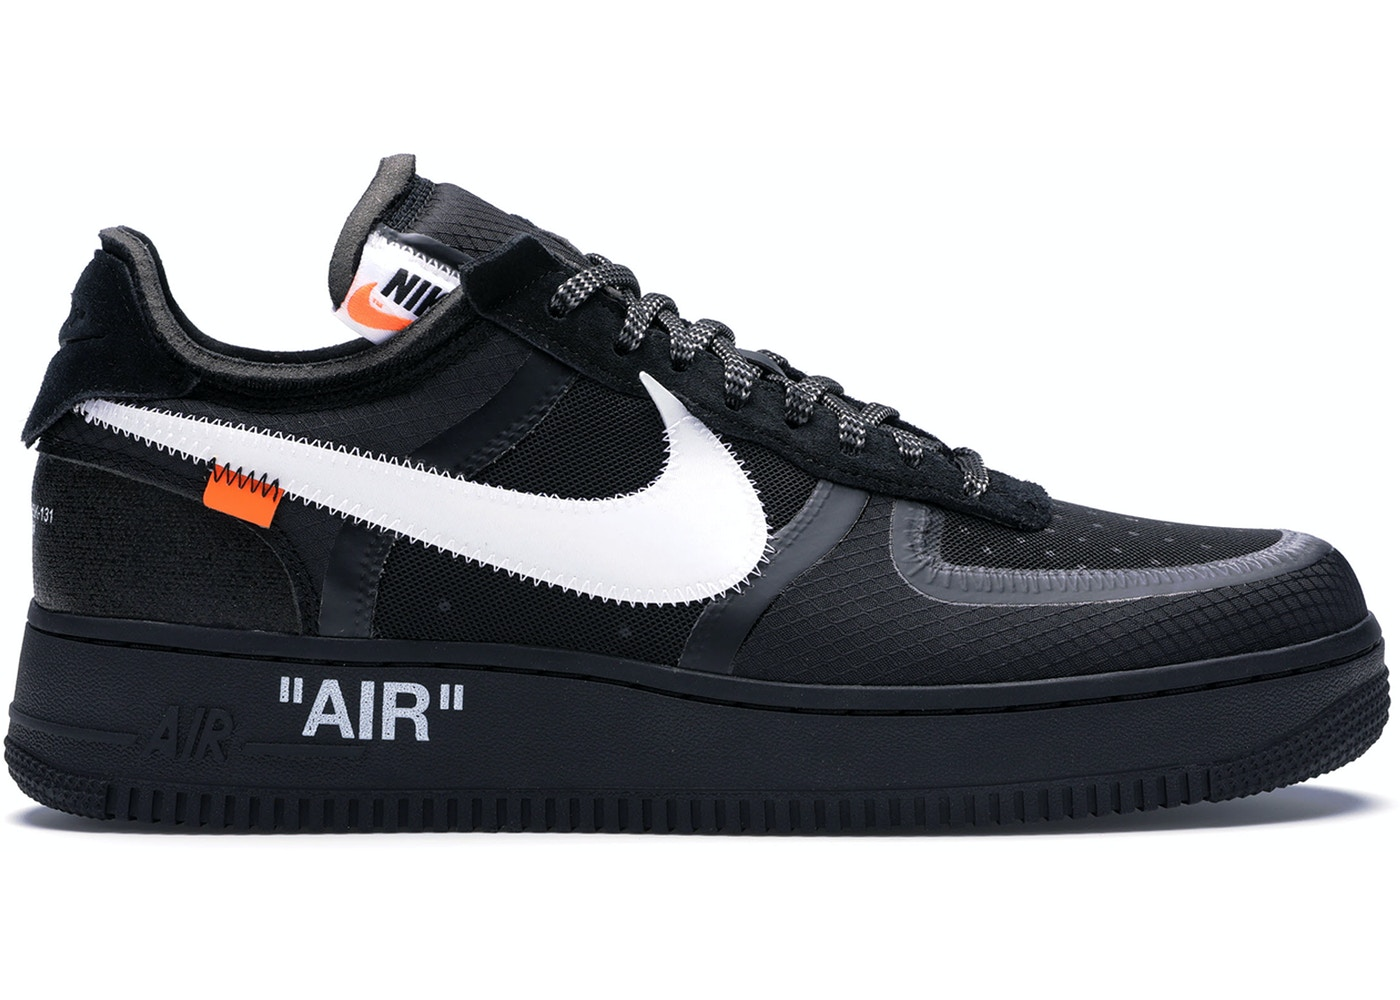 sentido Buscar a tientas Escrutinio  Nike Air Force 1 Low Off-White Black White - AO4606-001